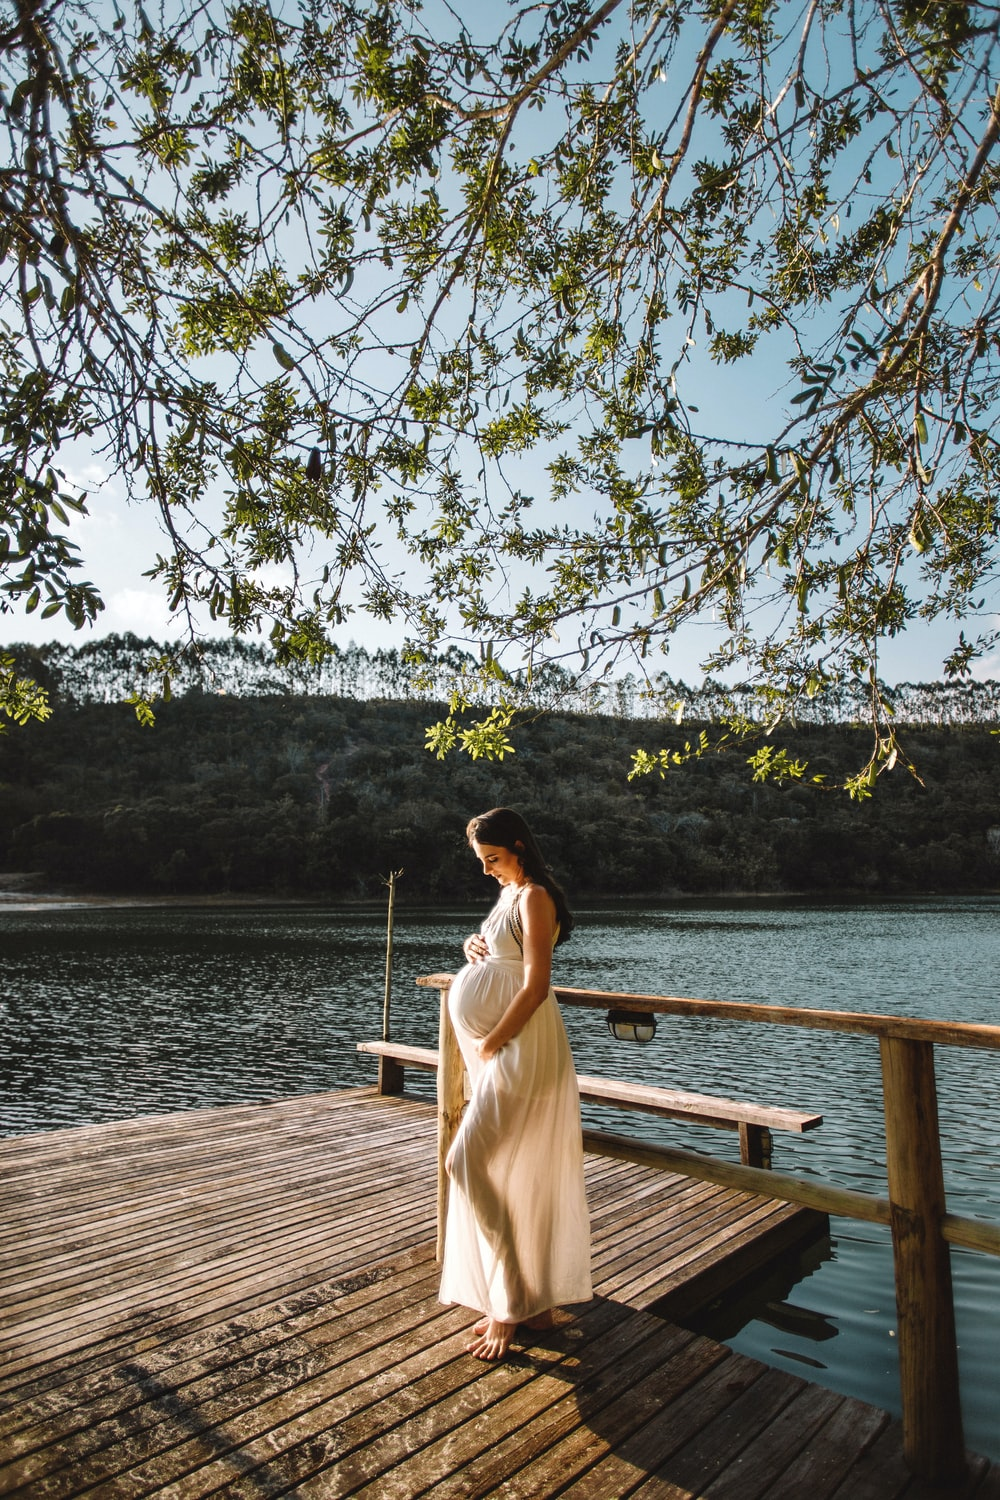 pregnant woman standing on wooden dock under tree